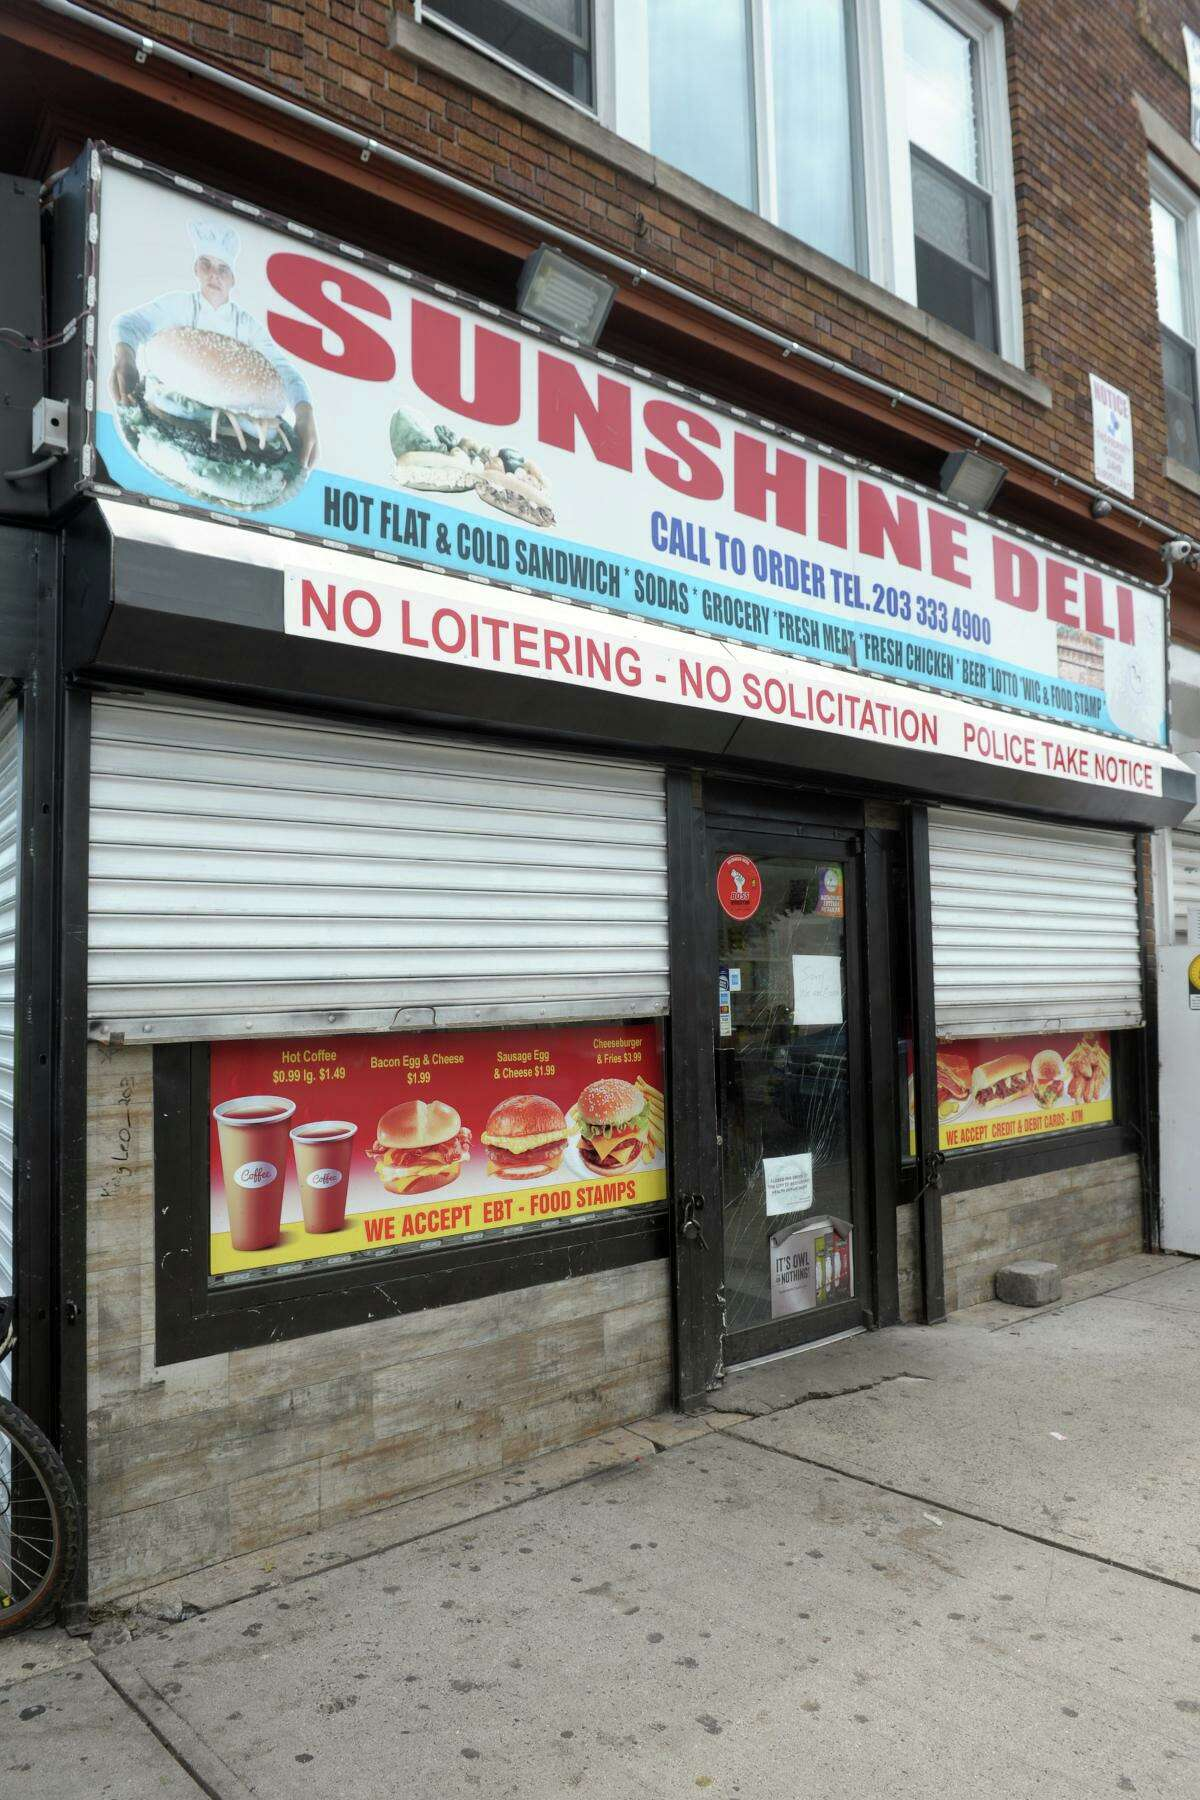 Sunshine Deli on Stratford Avenue in Bridgeport on Wednesday. Bridgeport health officials said Wednesday the deli was closed because of health code violations.